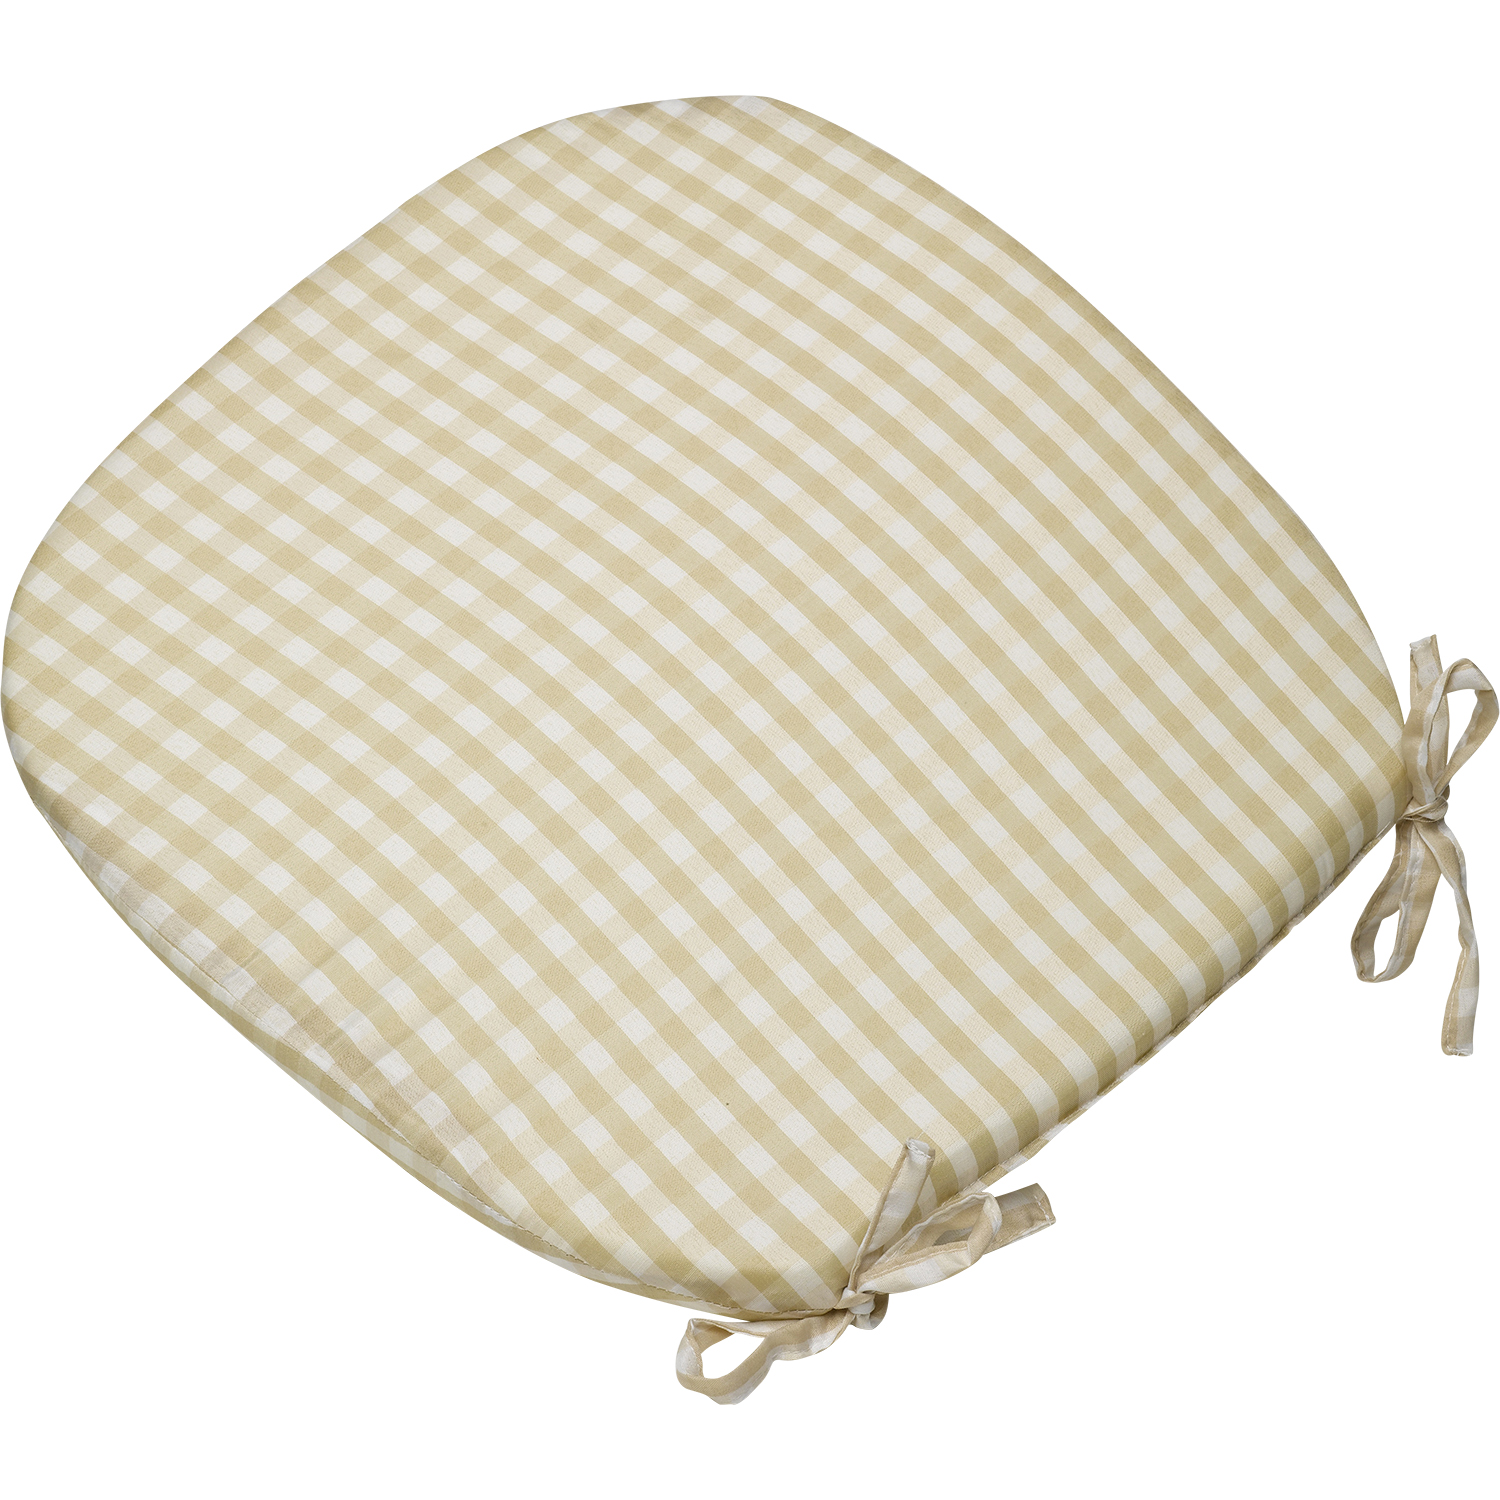 chair cushions tie on folding lawn chairs heavy duty checked seatpad dining kitchen garden seat cushion